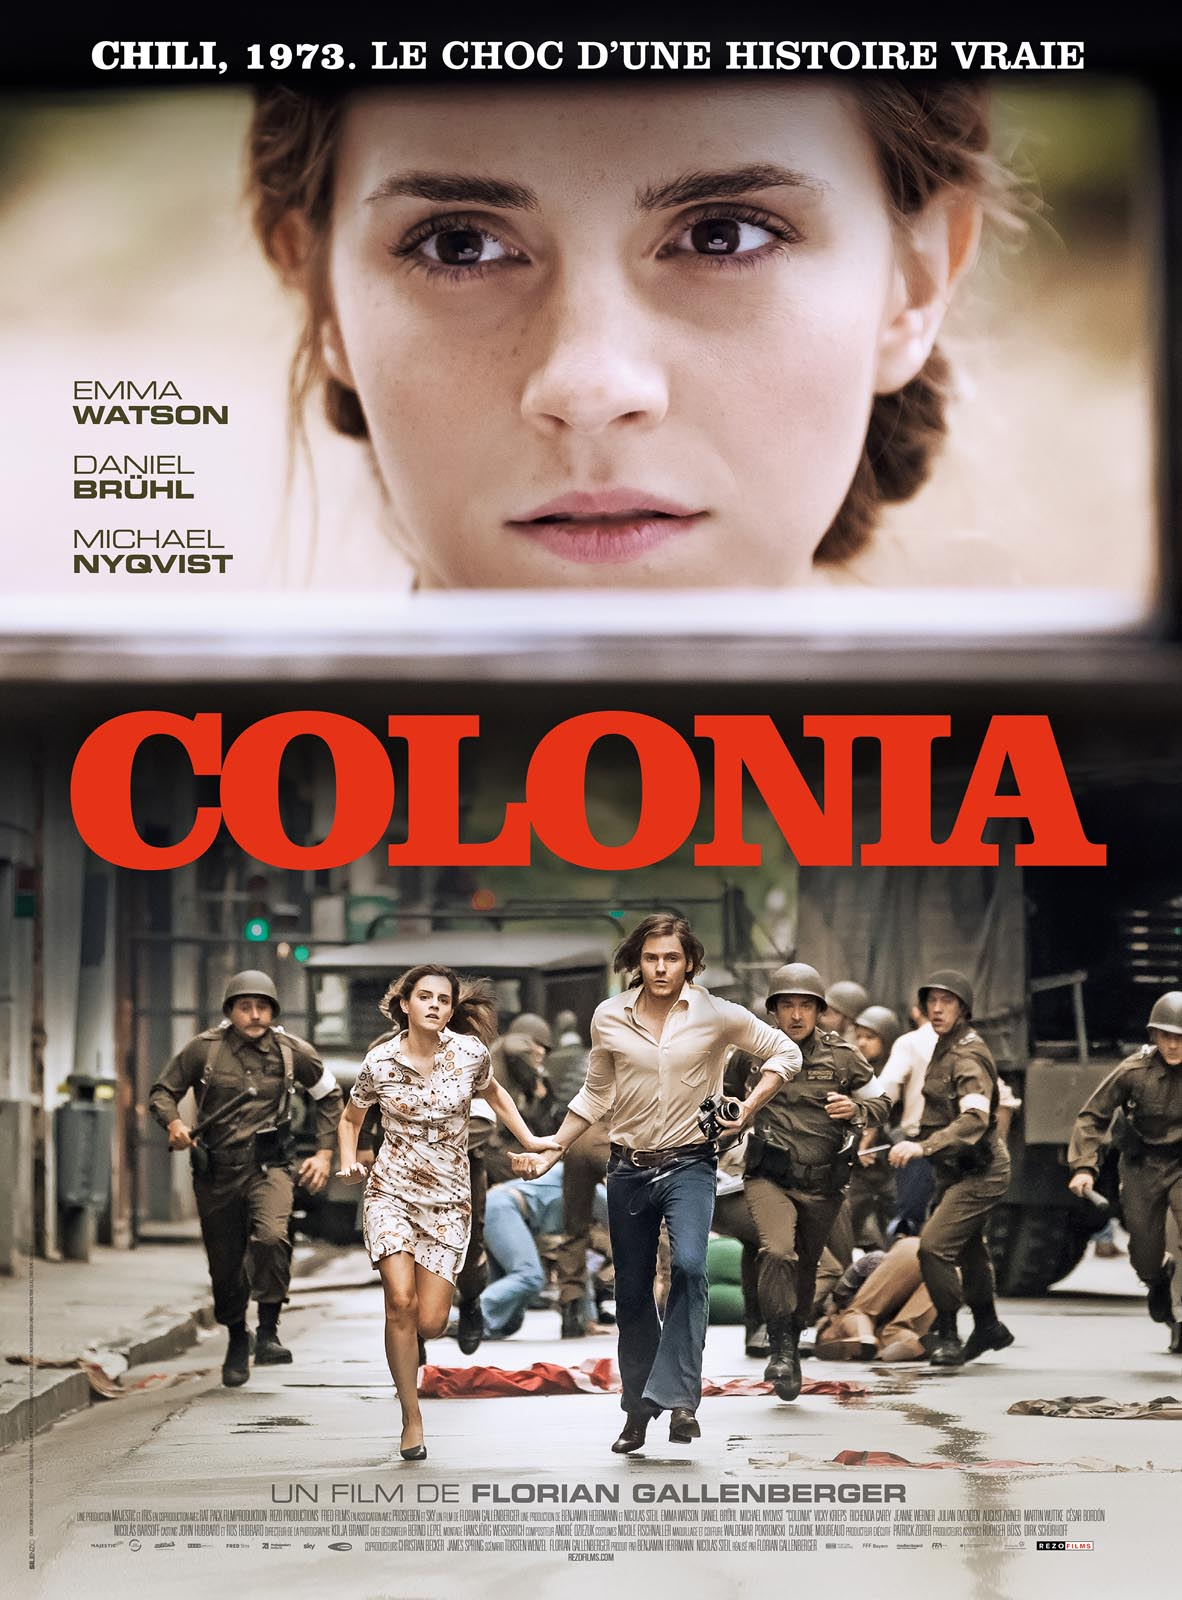 Populaire Colonia - film 2015 - AlloCiné ZL93